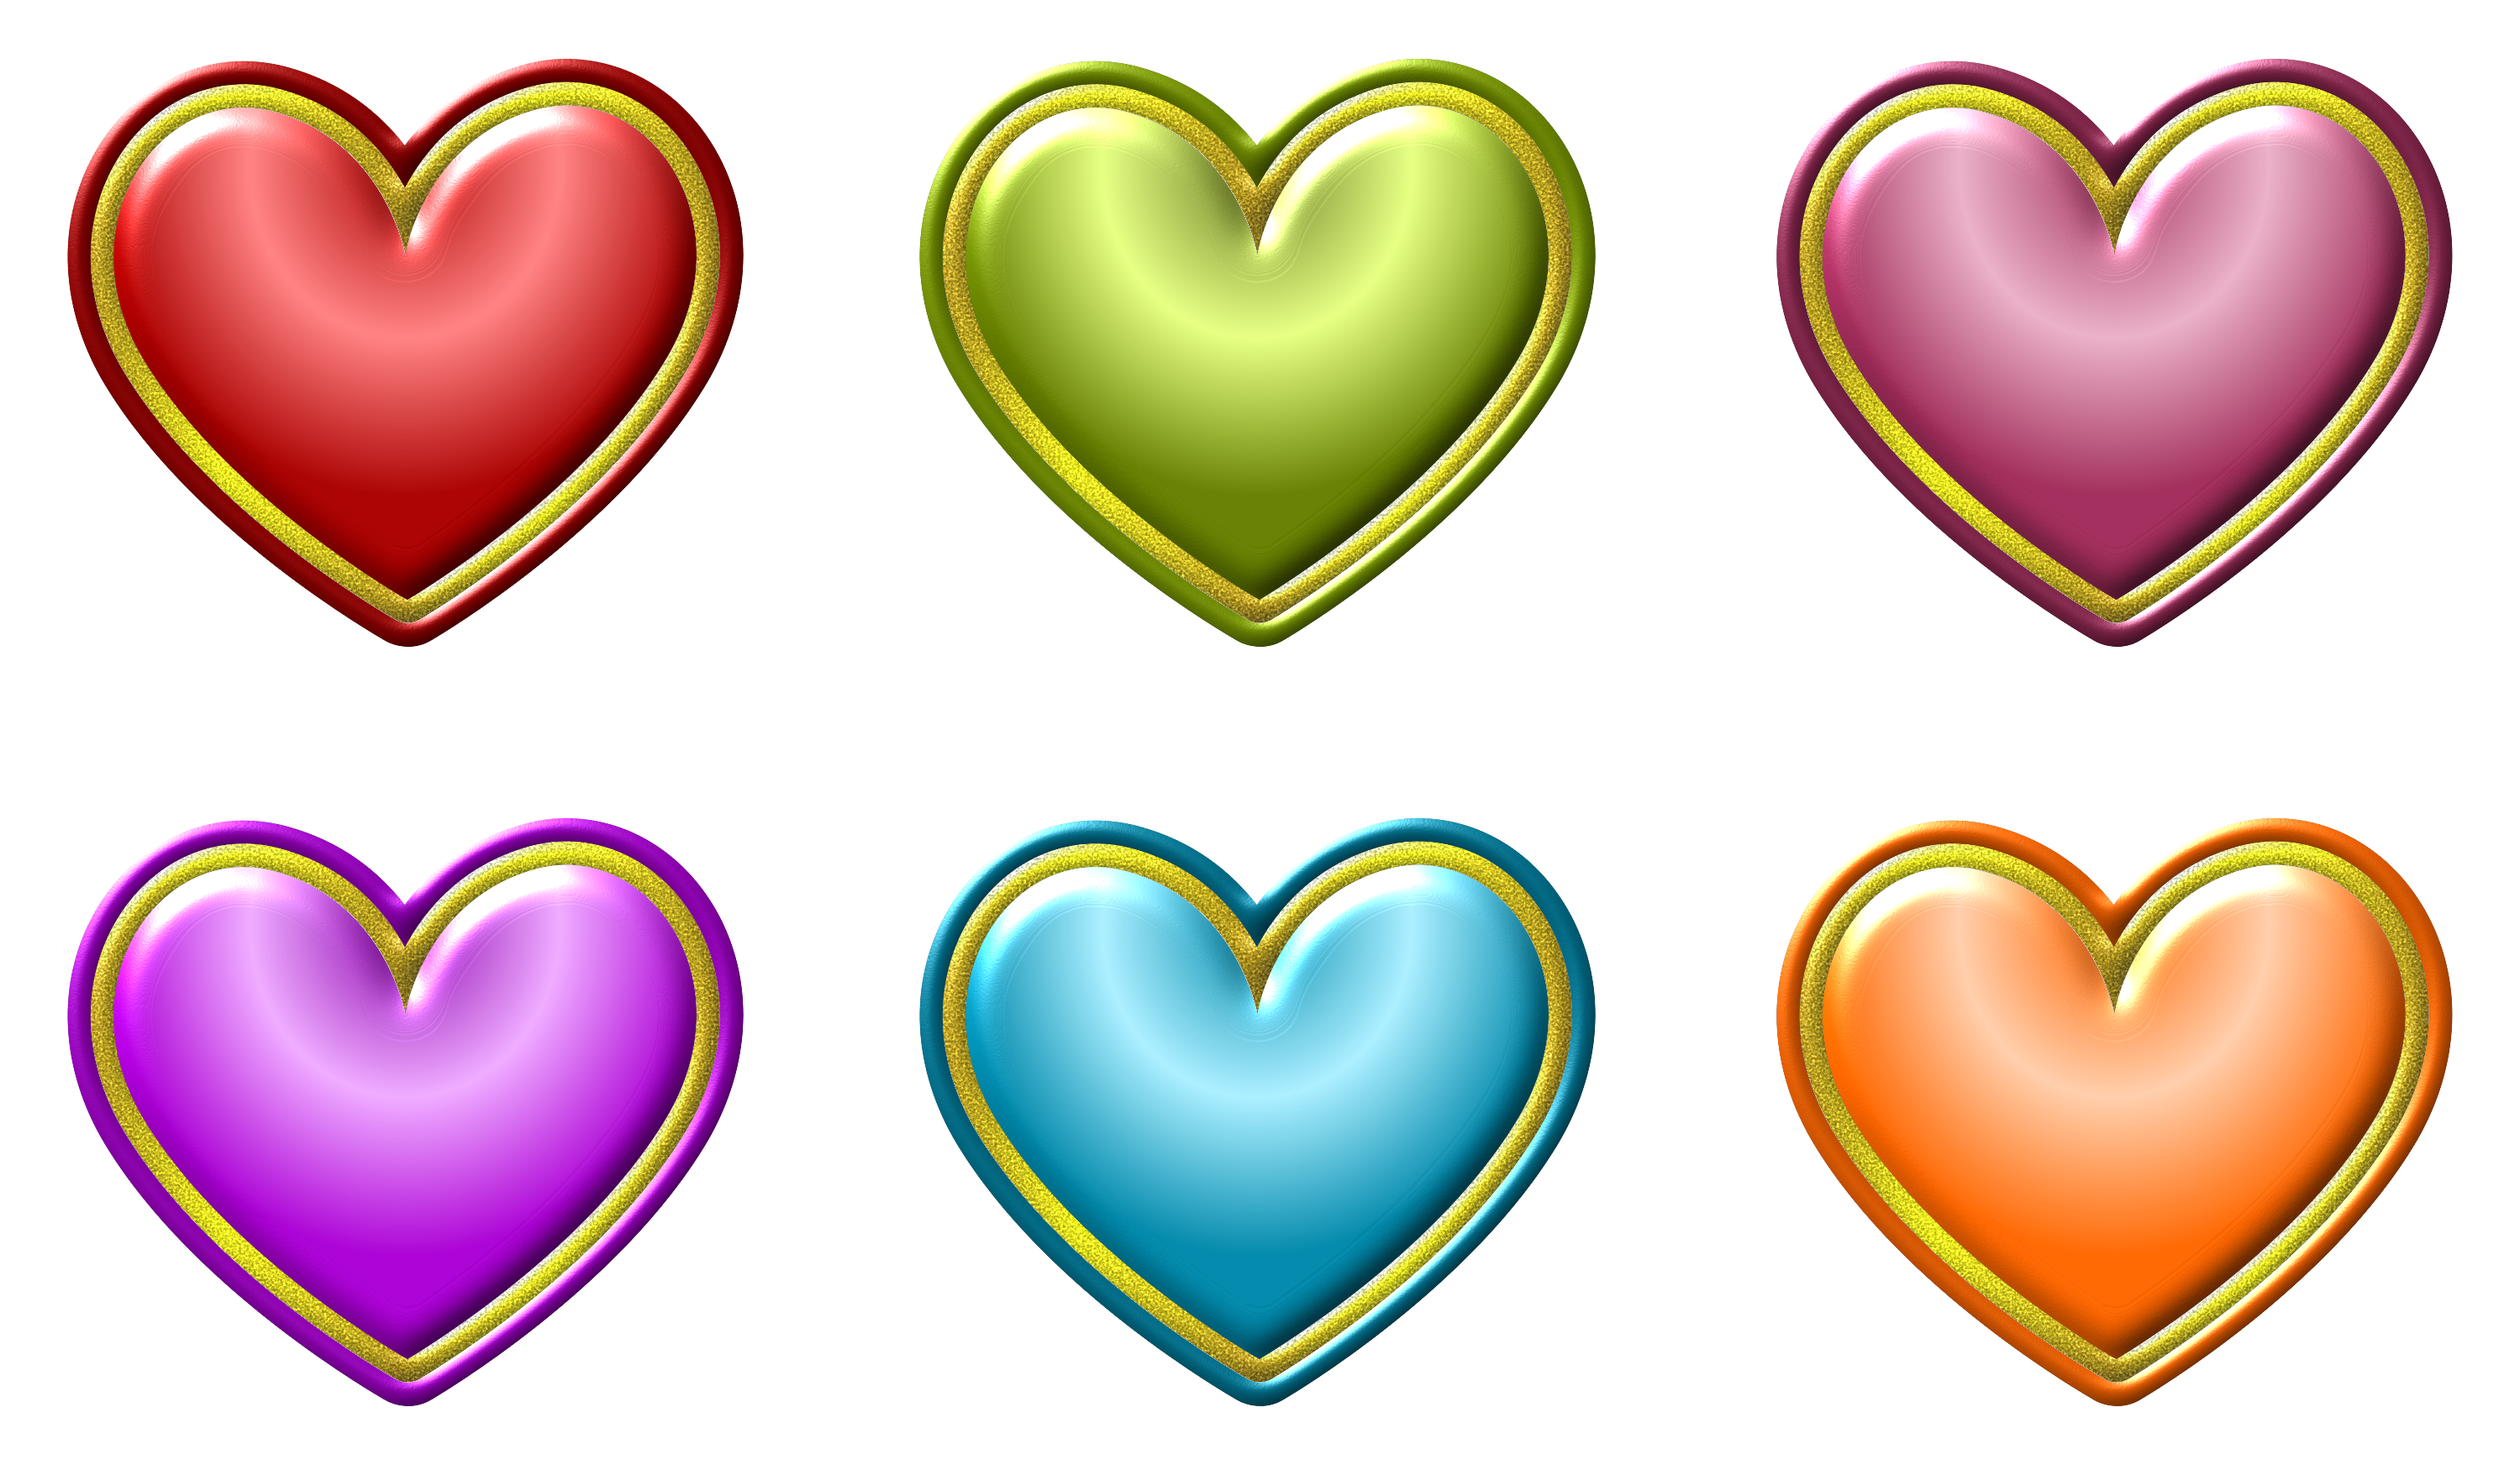 Uncategorized Corasones corazones decorativos 23 by creaciones jean on deviantart jean